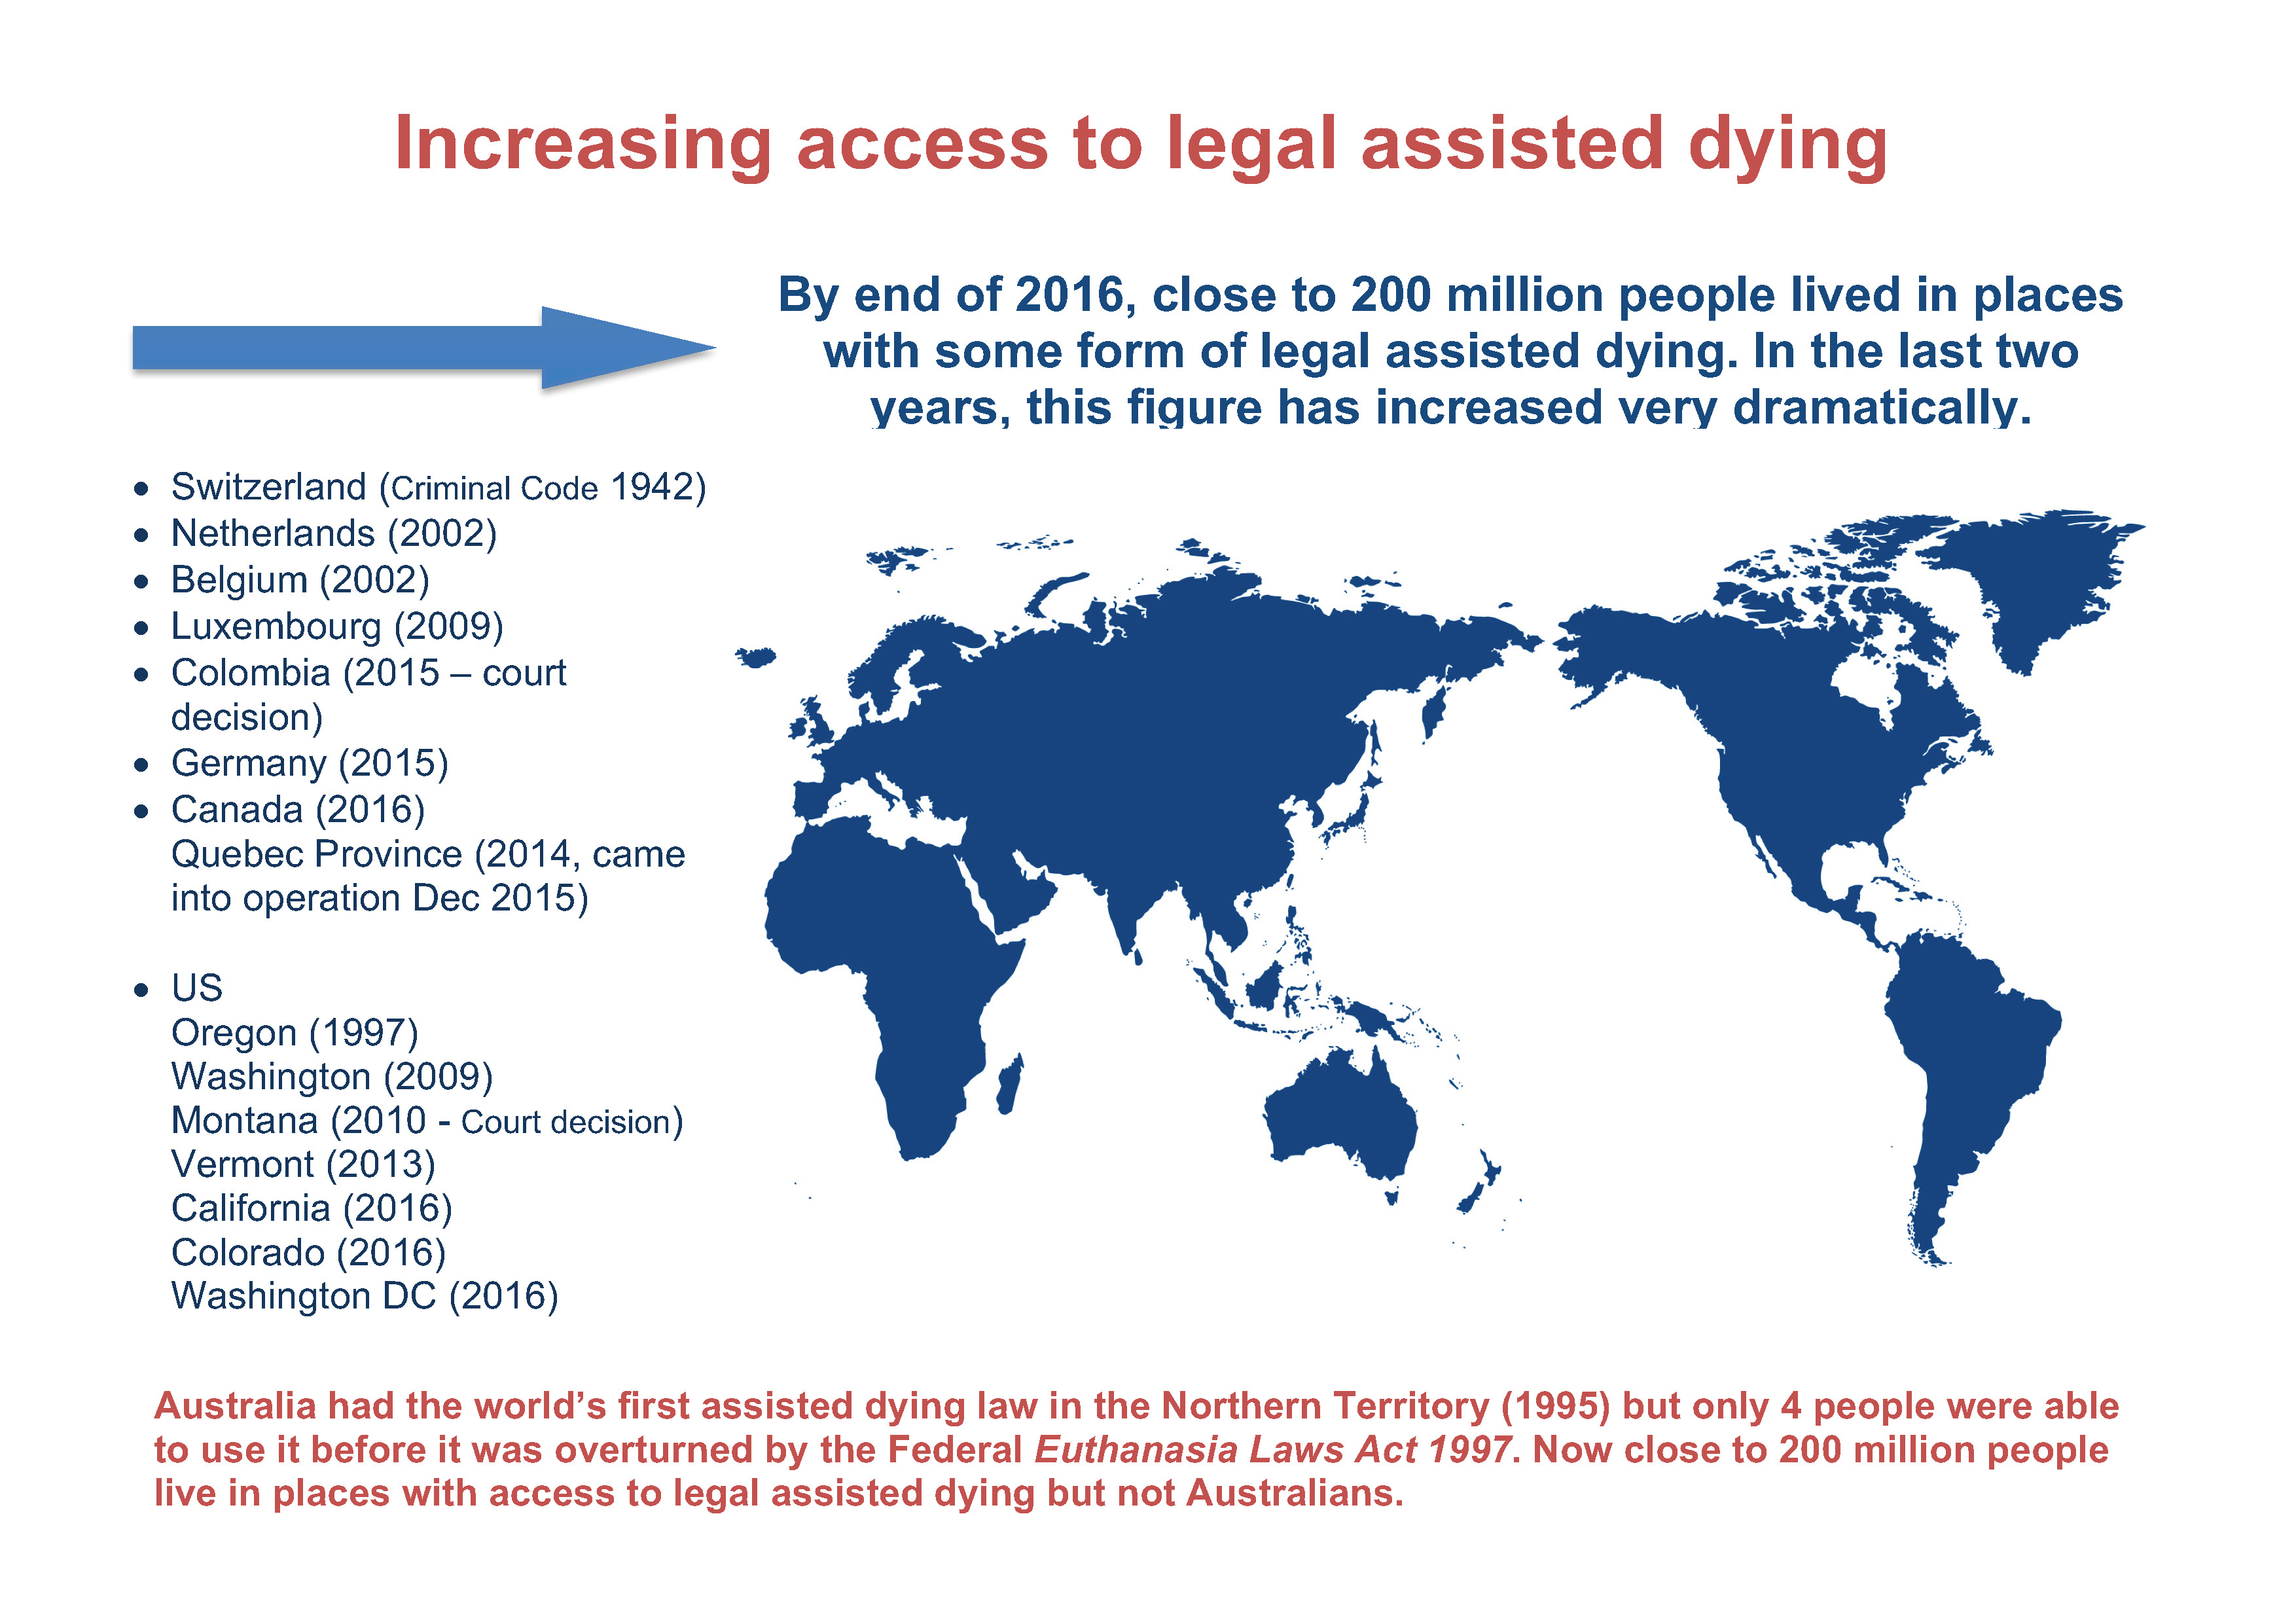 voluntary assisted euthanasia Assisted suicide and euthanasia: from voluntary to involuntary while promoted in the name of personal autonomy, physician-assisted suicide (providing lethal.